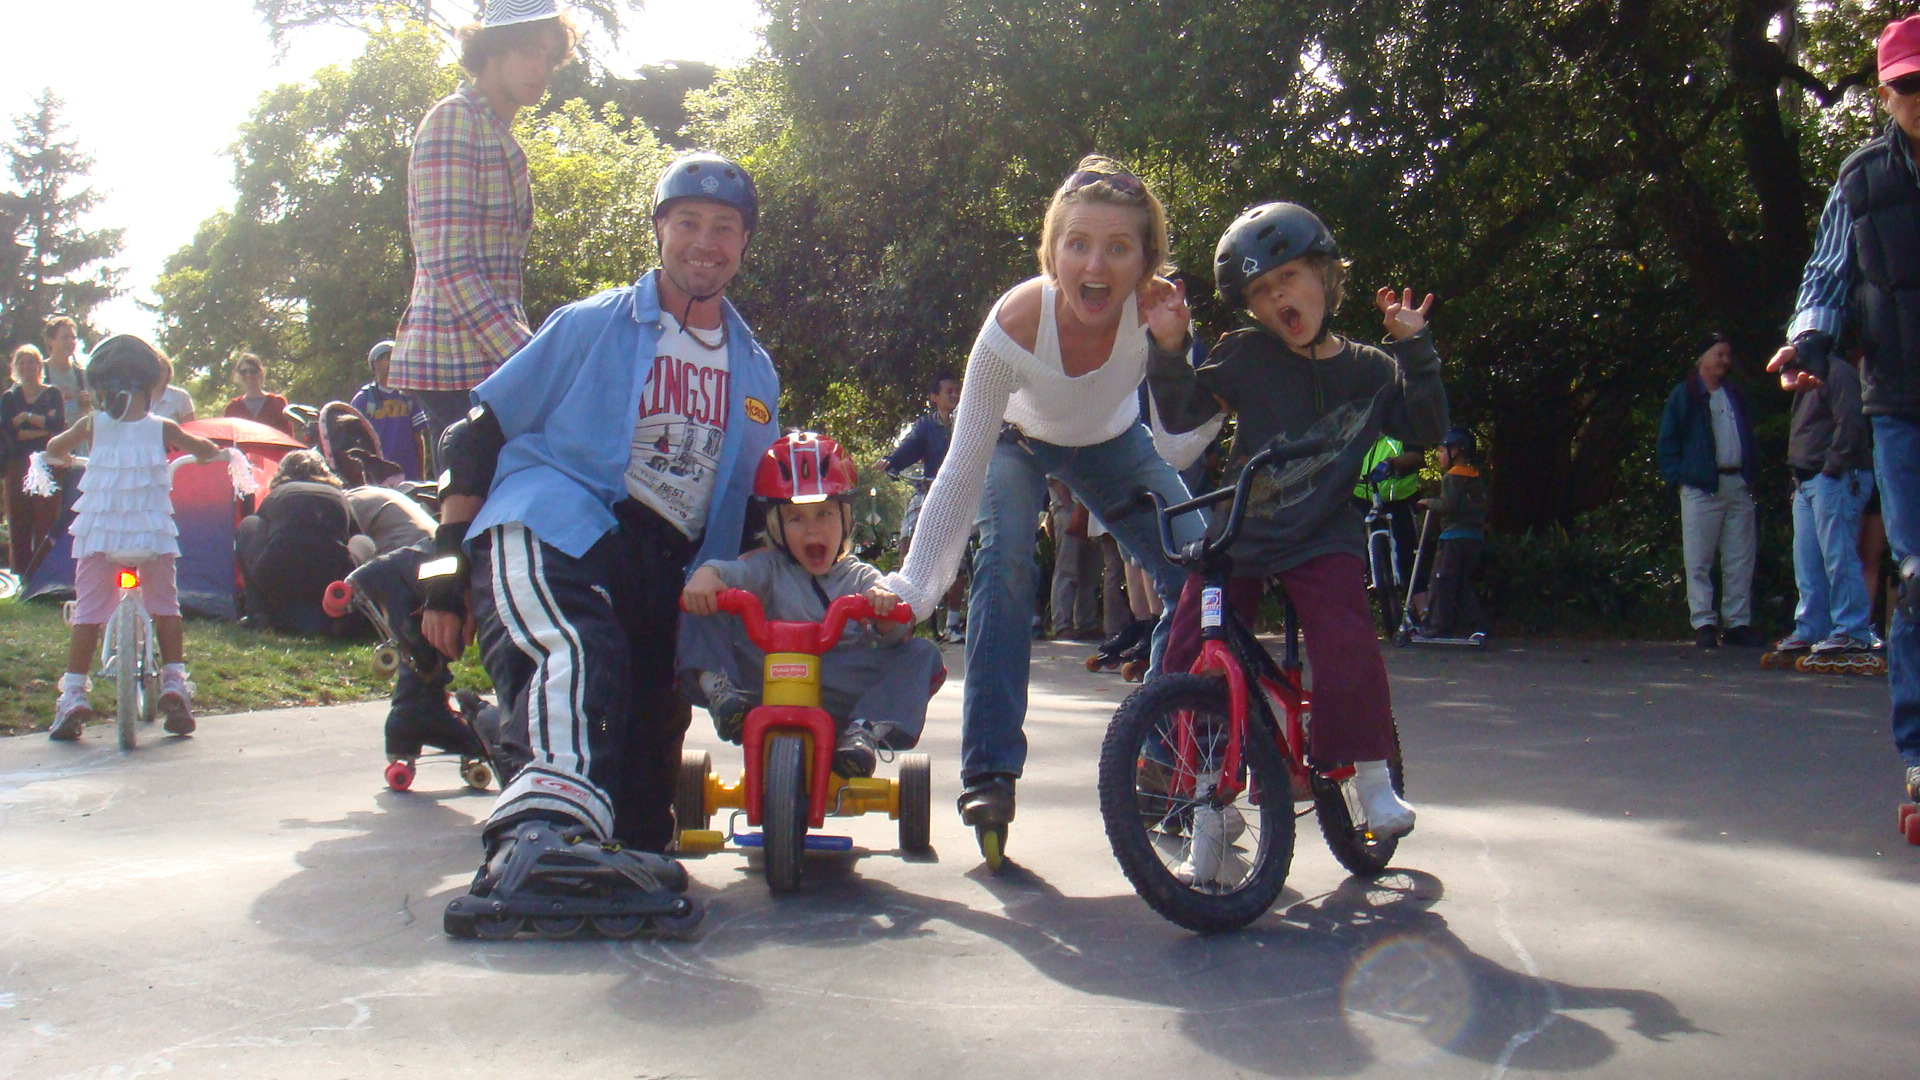 Relaxing_And_Skating_with_kids_in_Golden_Gate_Park